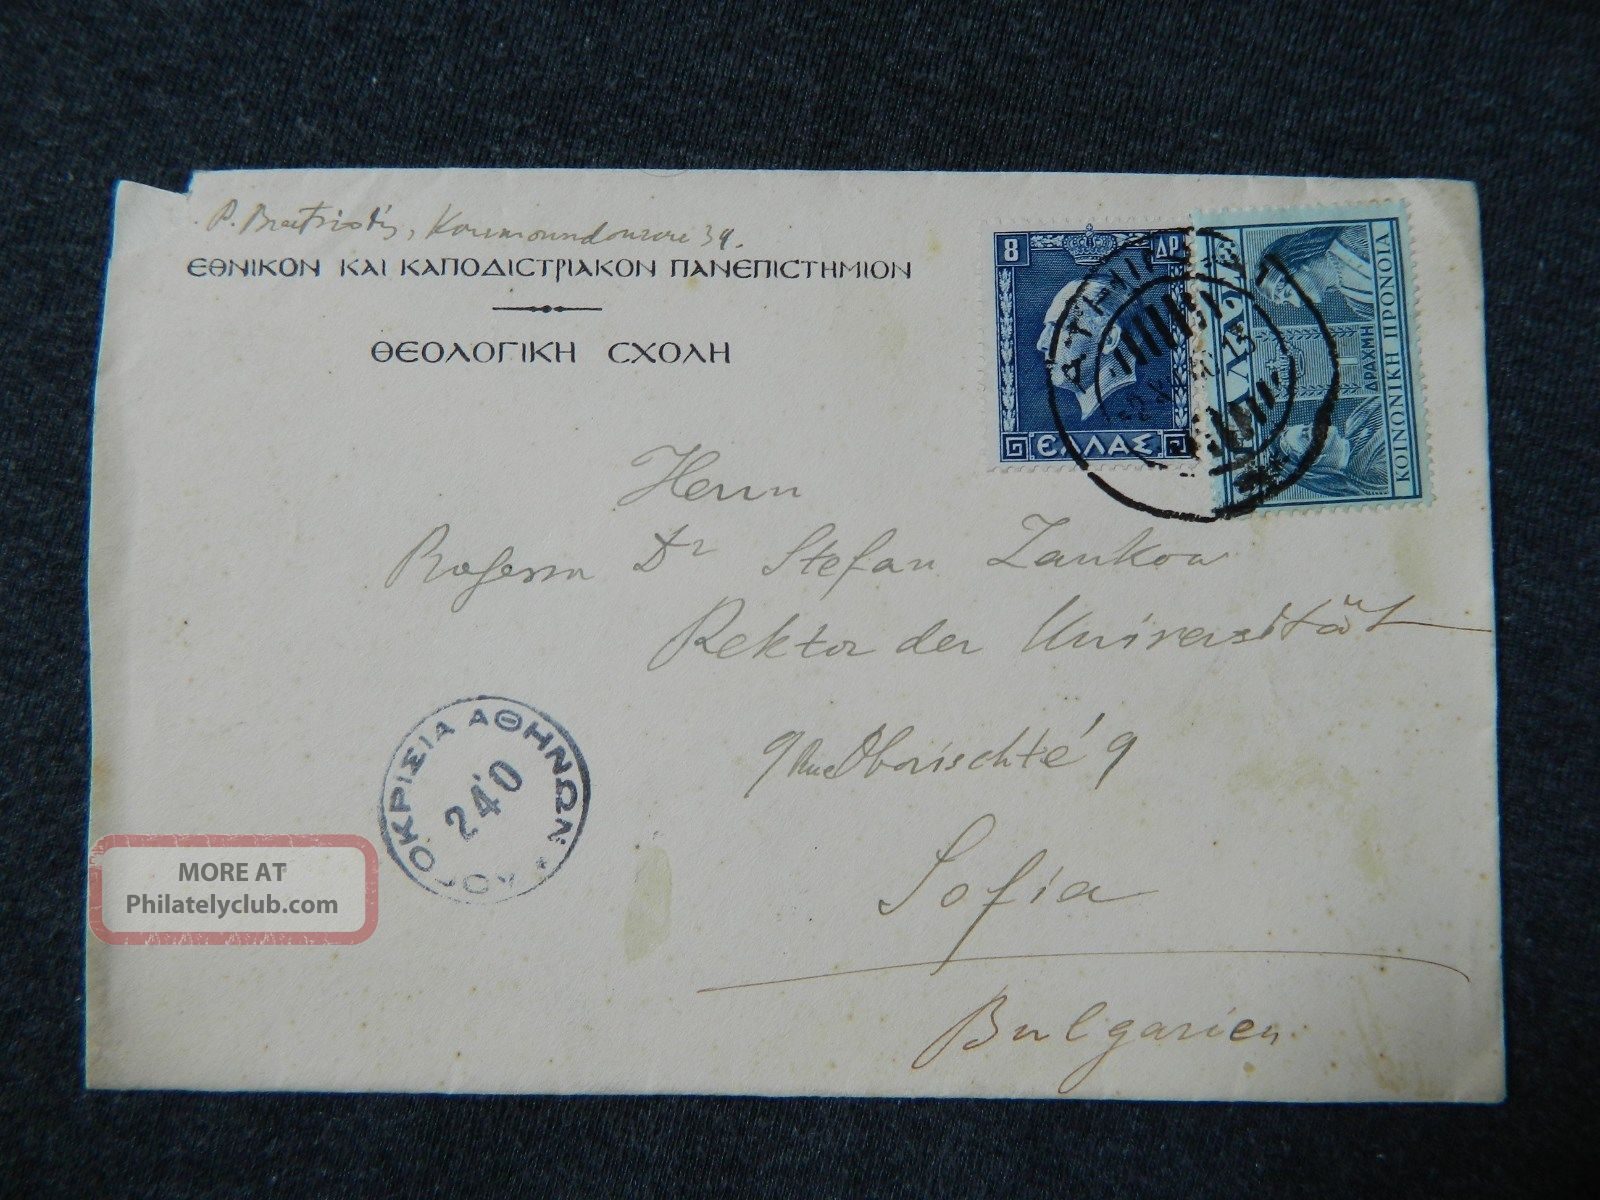 Greece Griechenland To Bulgaria Airmail Censor Cover 1940 Worldwide photo